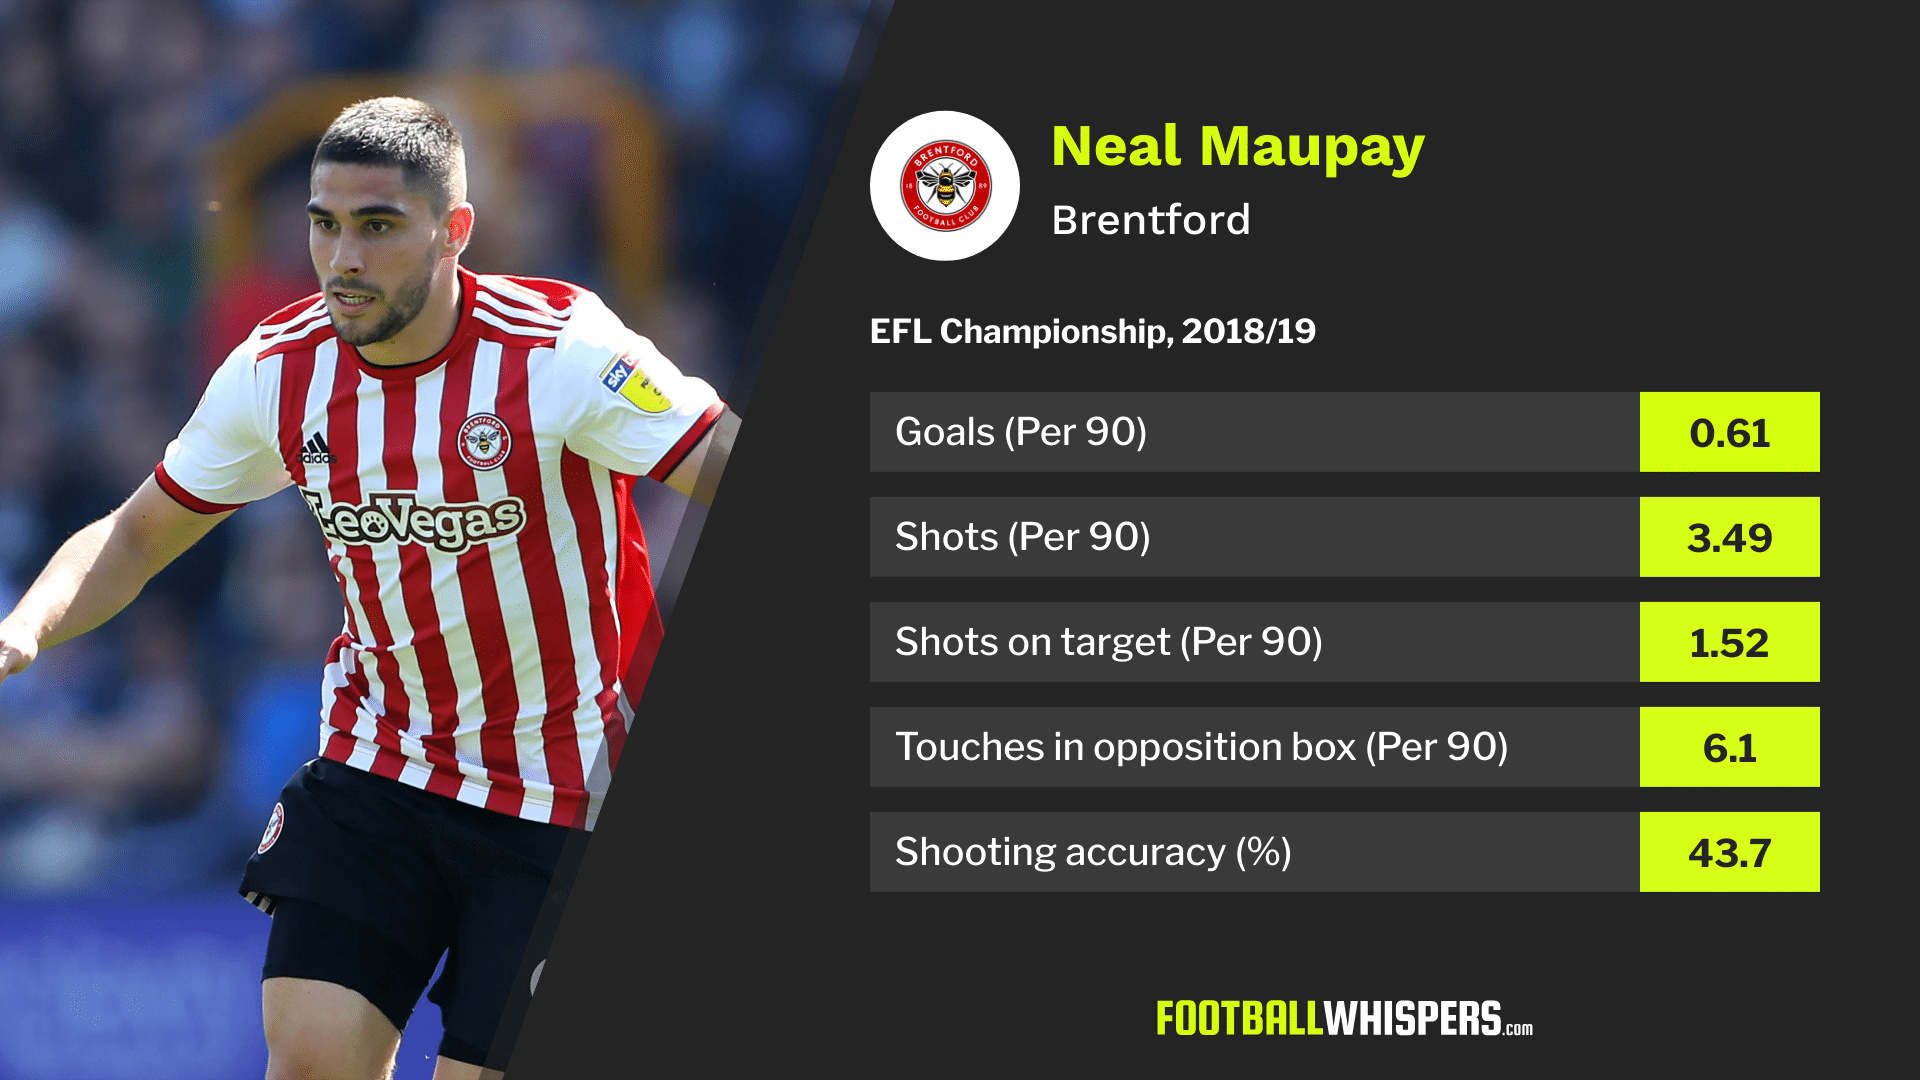 Brentford striker Neal Maupay's Championship statistics for 2018/19